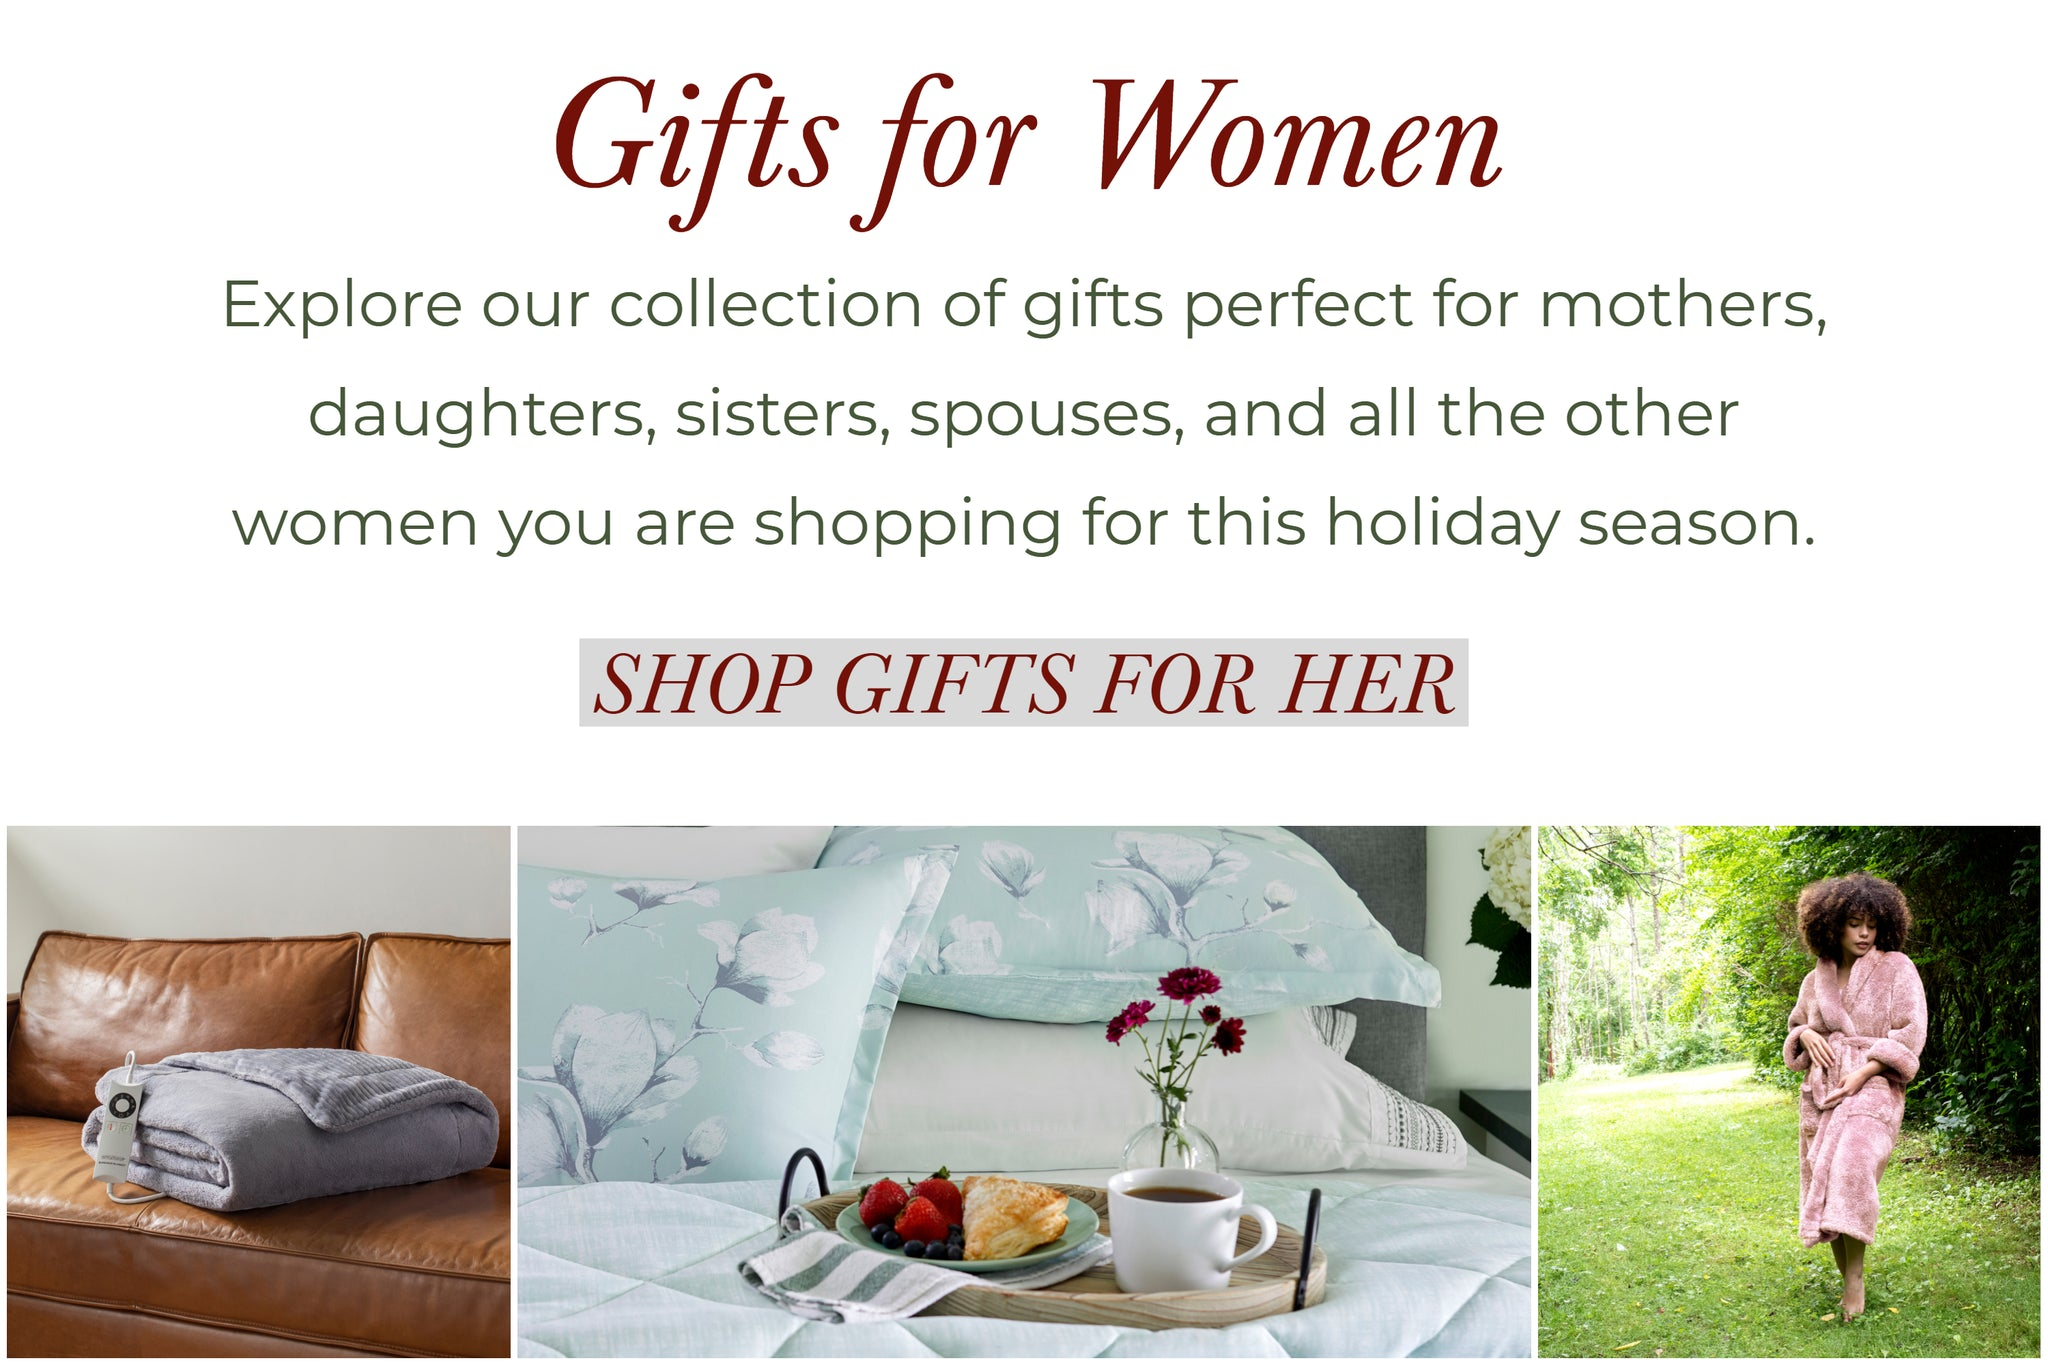 WOMENS GIFTSExplore our collection of gifts perfect for mothers, daughters, sisters, spouses, and all the other women you are shopping for this holiday season.